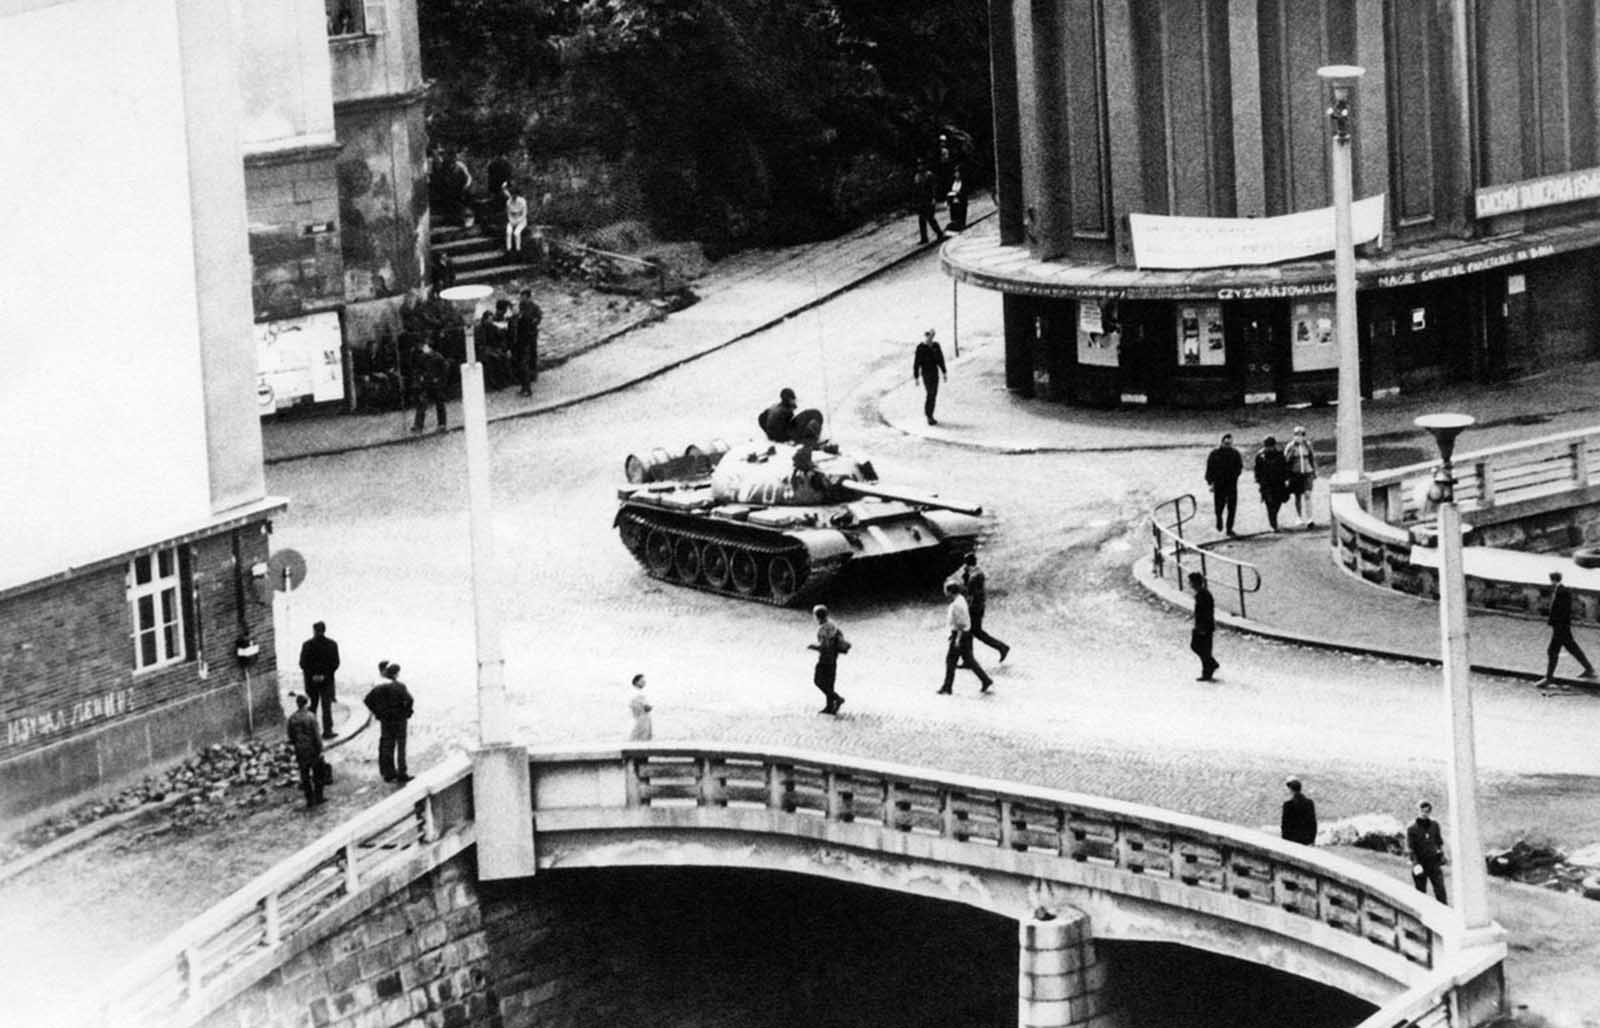 A photo taken in Trutnov, Czechoslovakia, during a confrontation between demonstrators and the Warsaw Pact troops and tanks, which invaded the country in August of 1968.